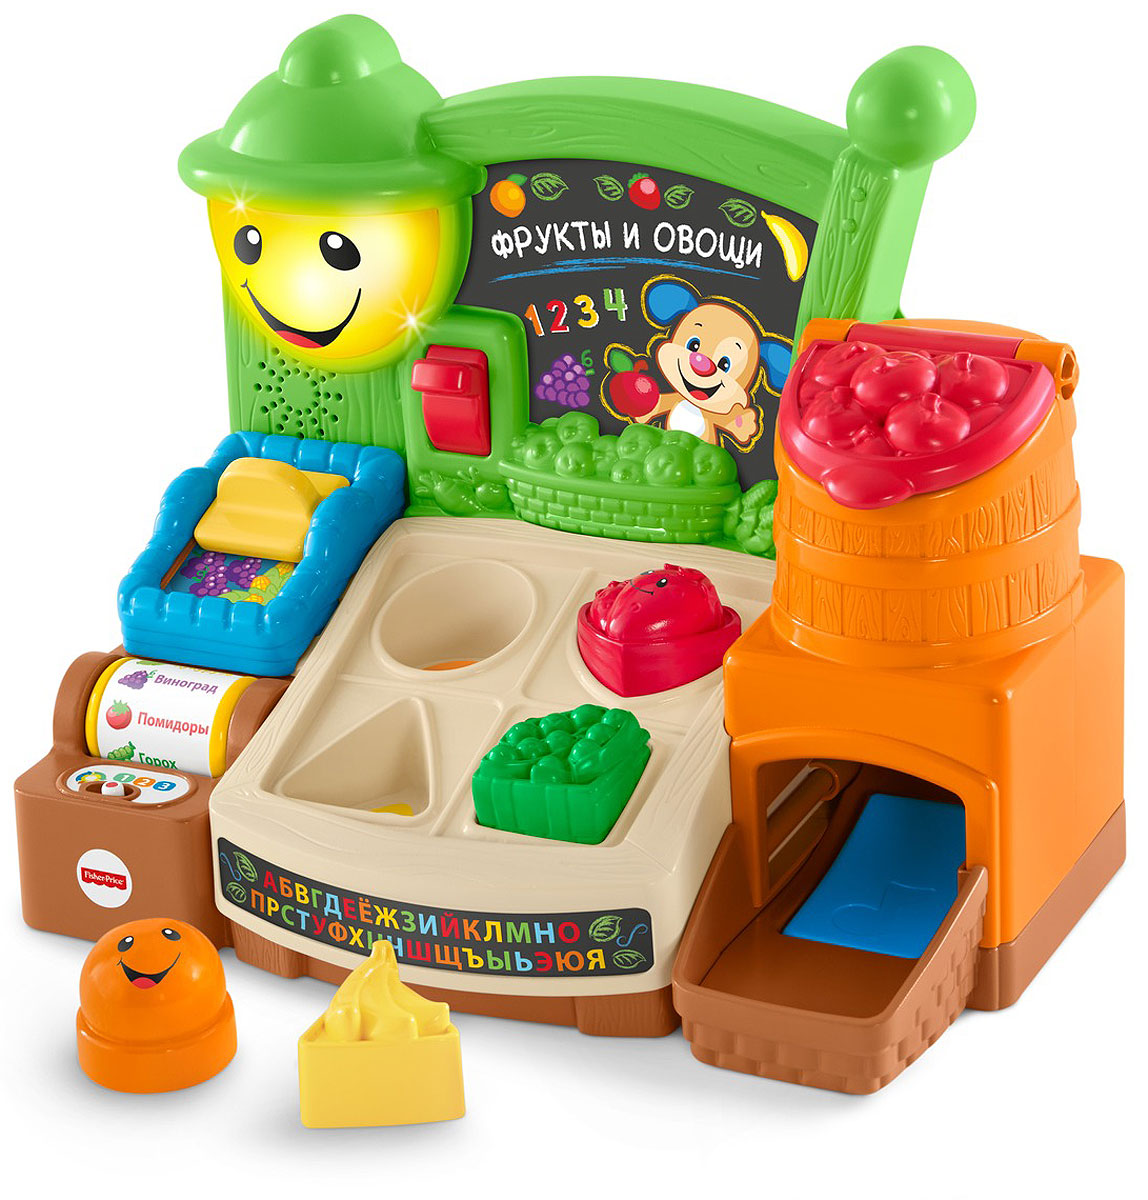 Fisher-Price Обучающий прилавок Веселые фрукты theodore gilliland fisher investments on utilities